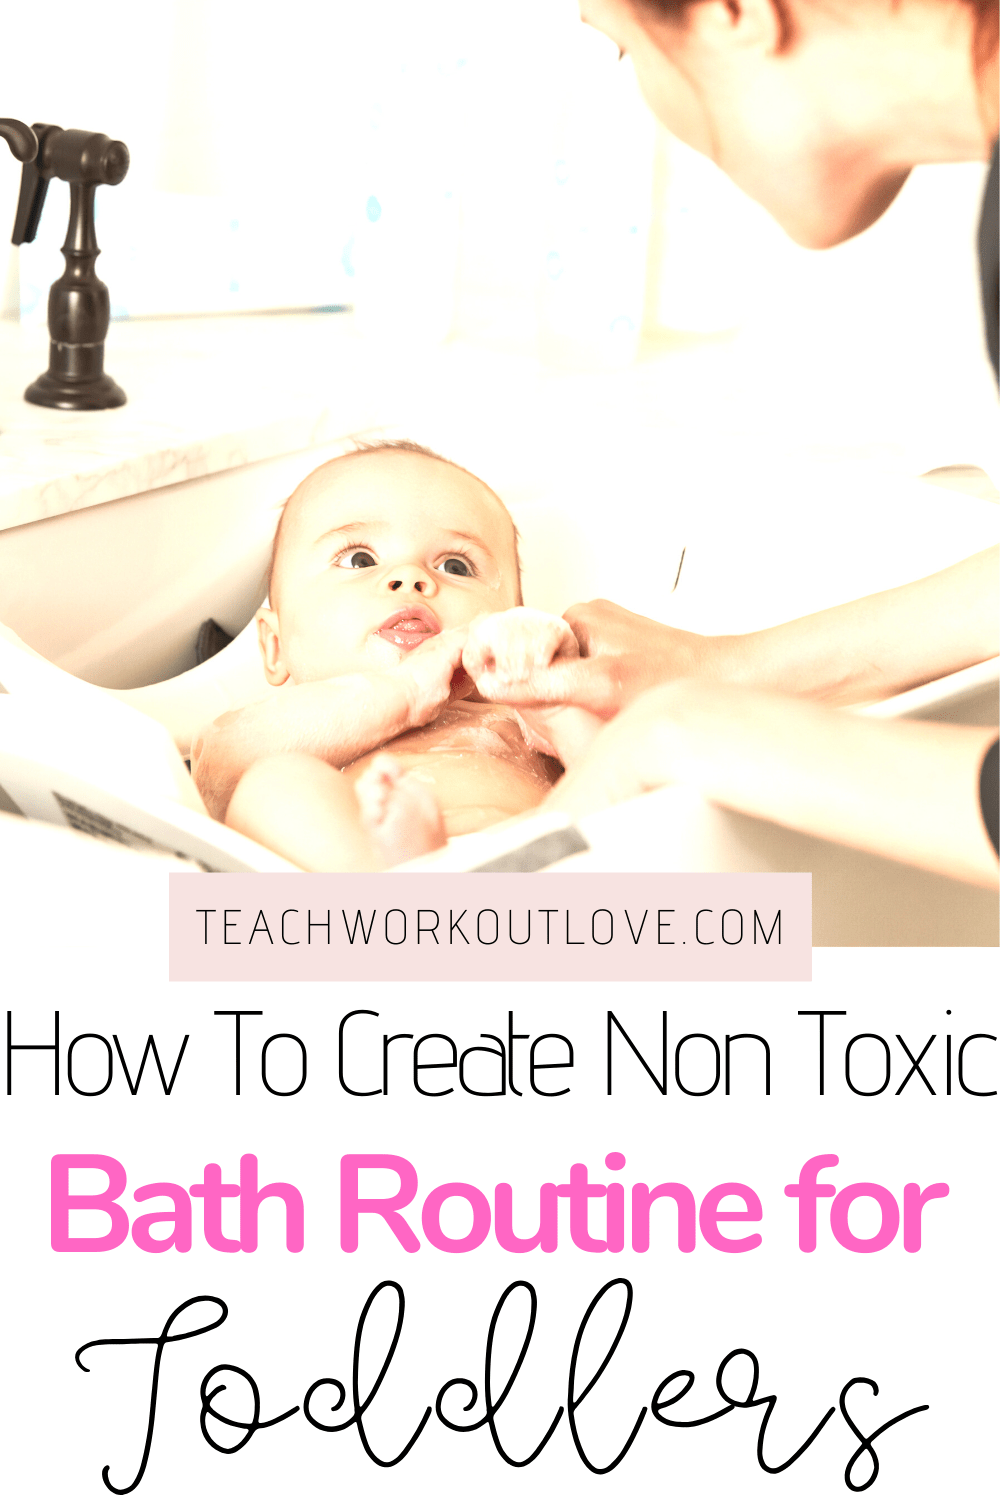 Make bath time fun and safe with this easy non toxic bath time routine for babies and toddlers. Stay phthalate, paraben, and BPA free!